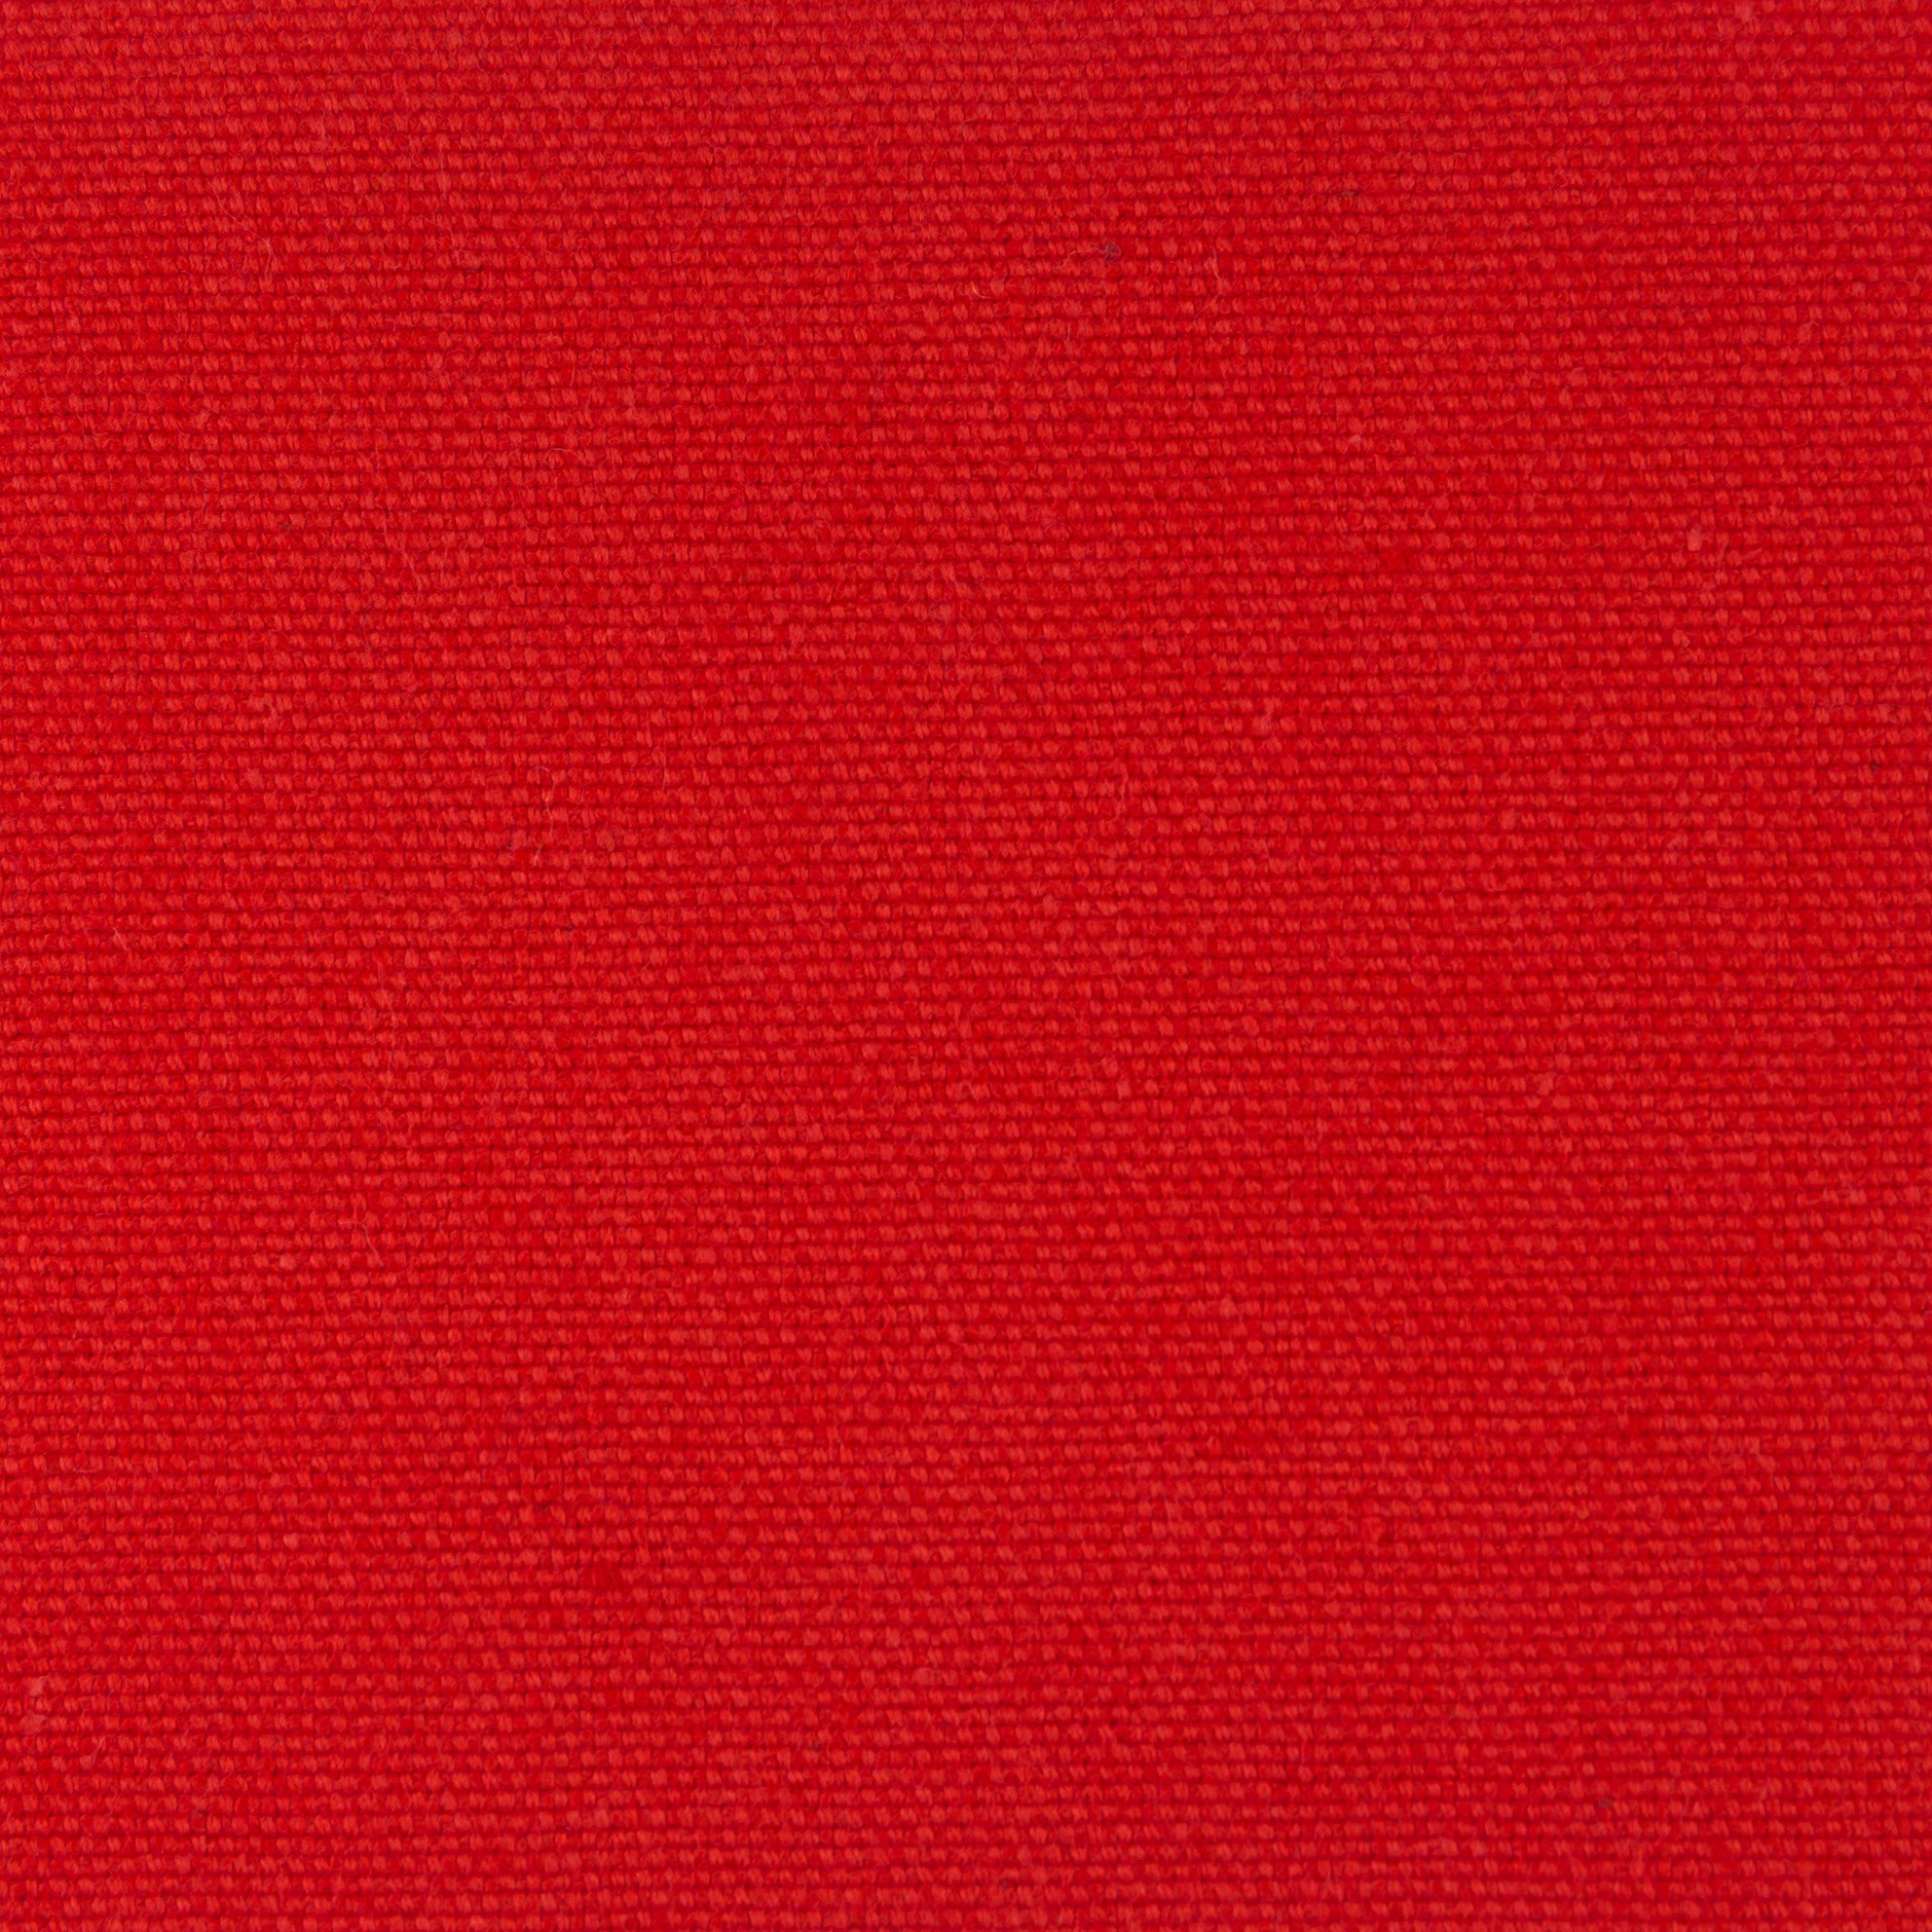 Woven Plain Fabric - Barmouth 09/016 Carnival Red Nicholas Engert Interiors